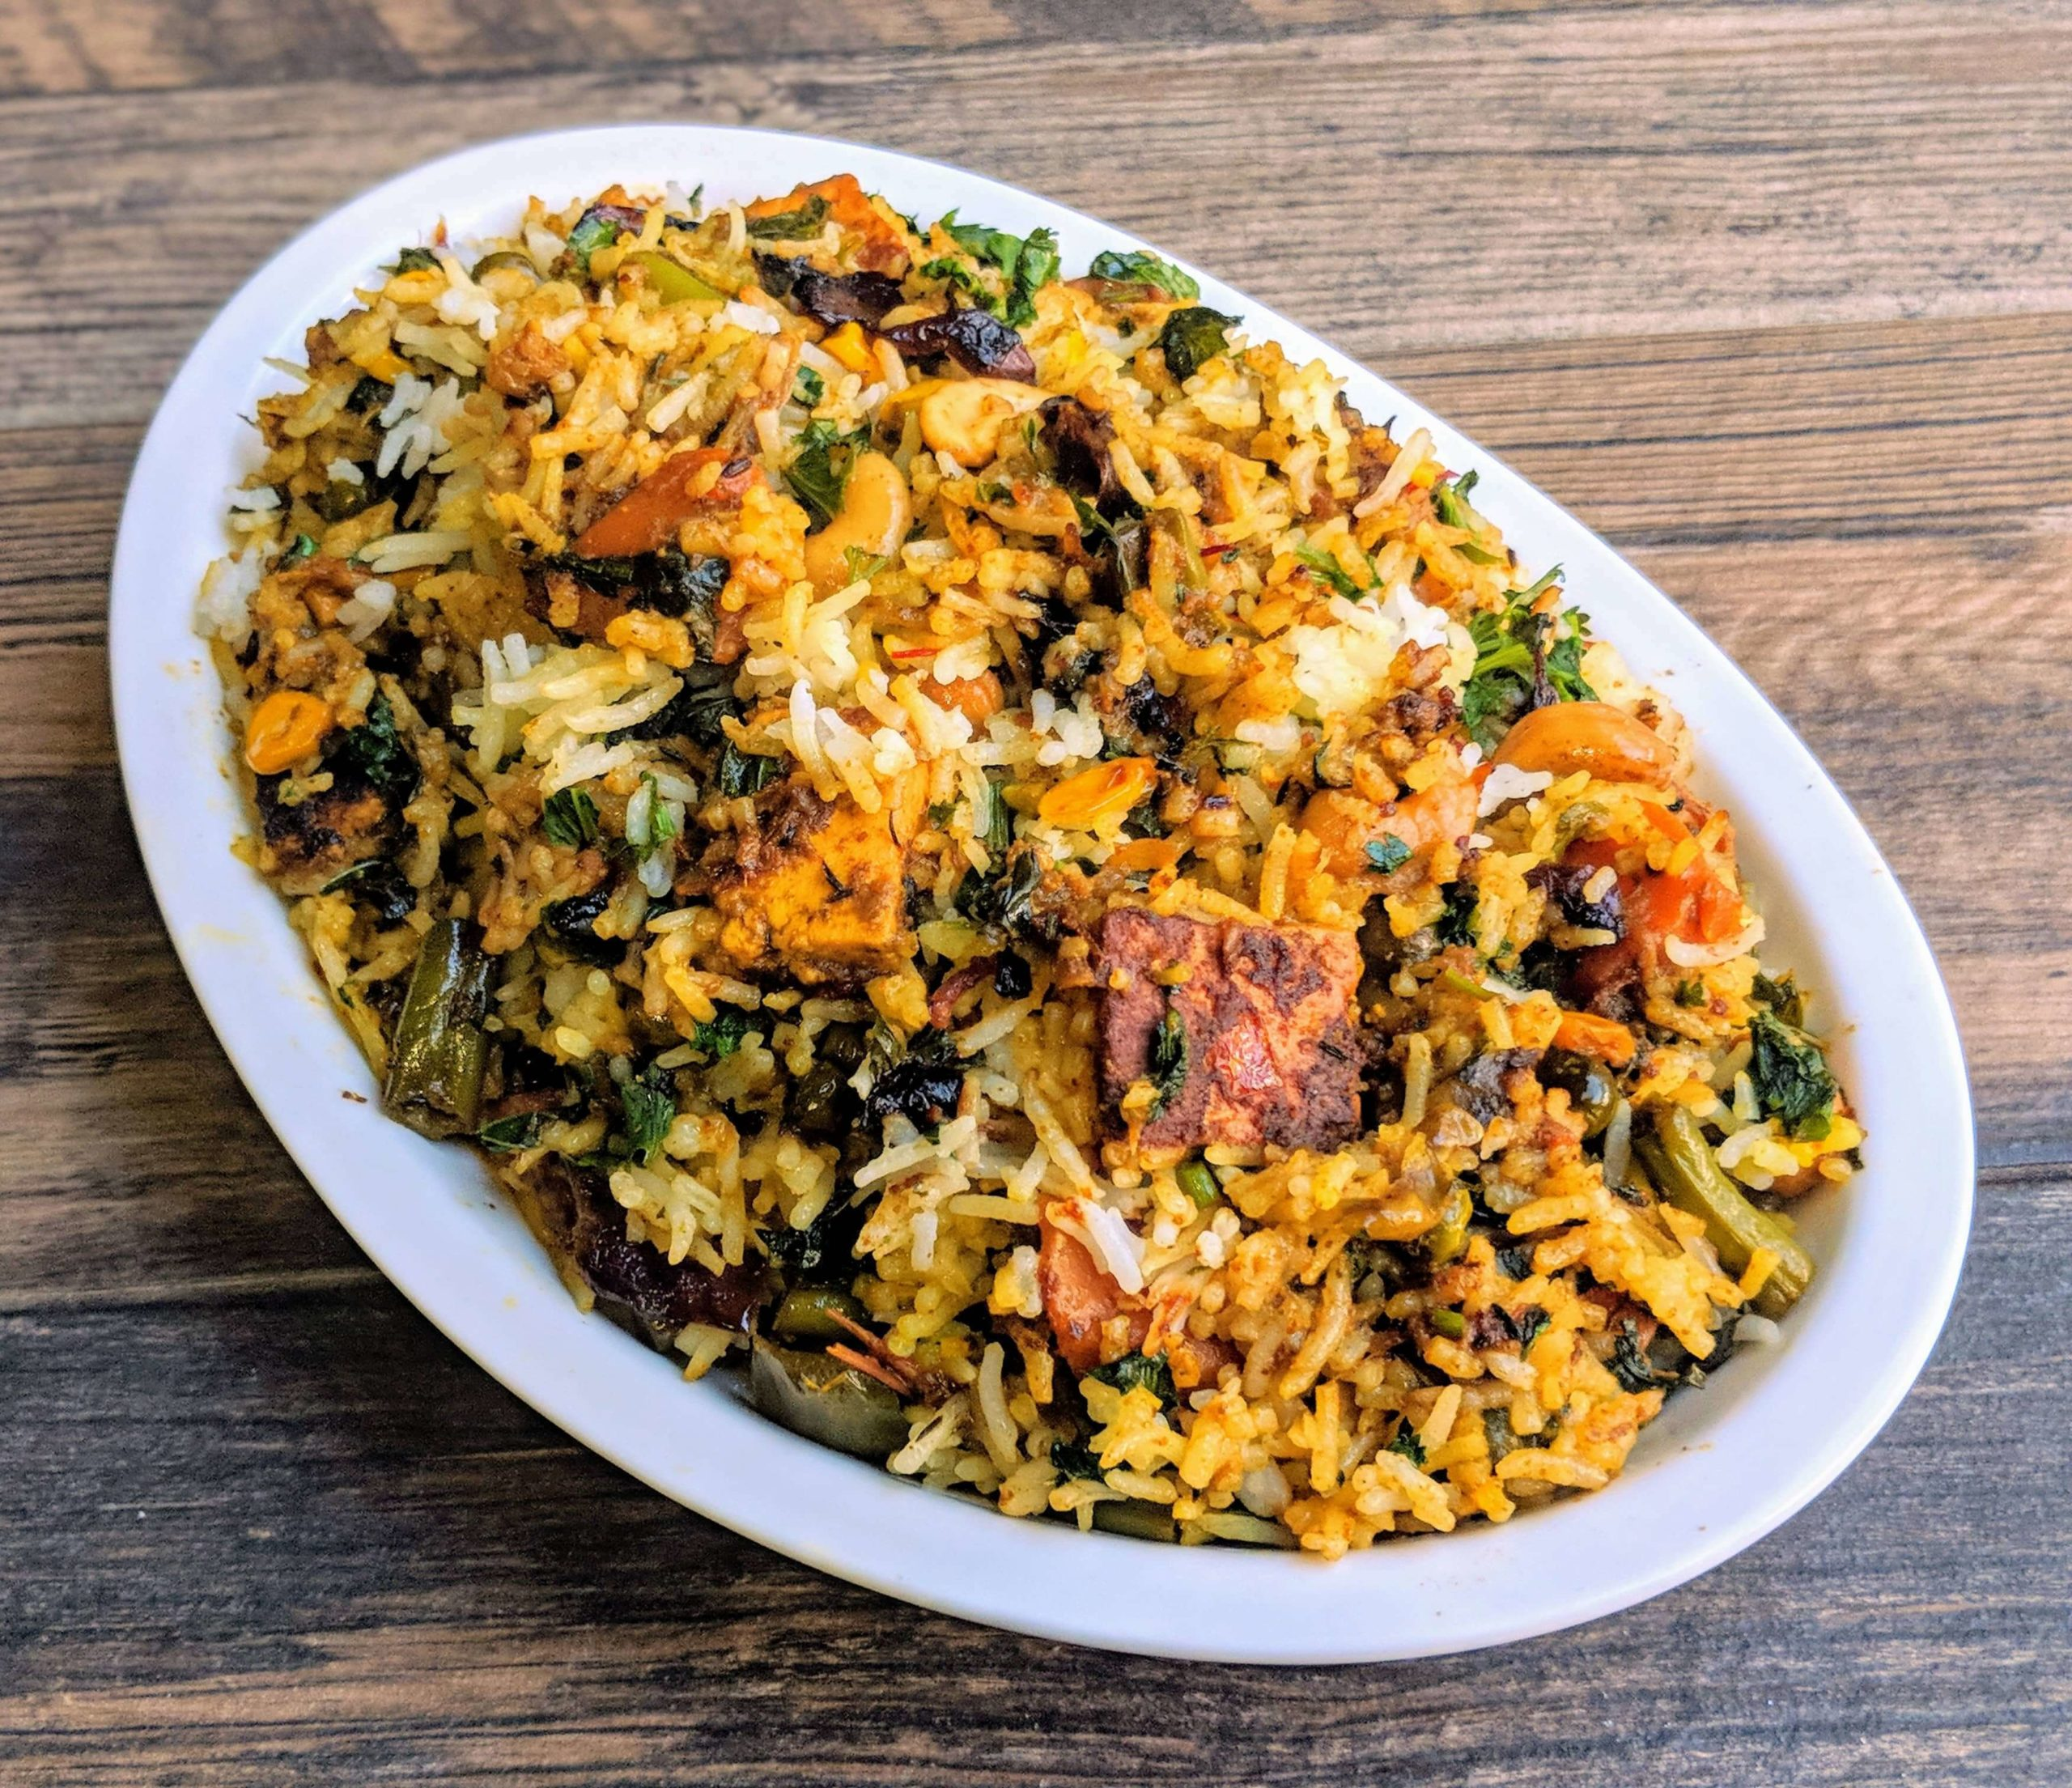 malabar biriyani vege cravings scaled 13 Lip-Smacking Vegetarian Dishes Of Kerala To Give You A Visual Treat